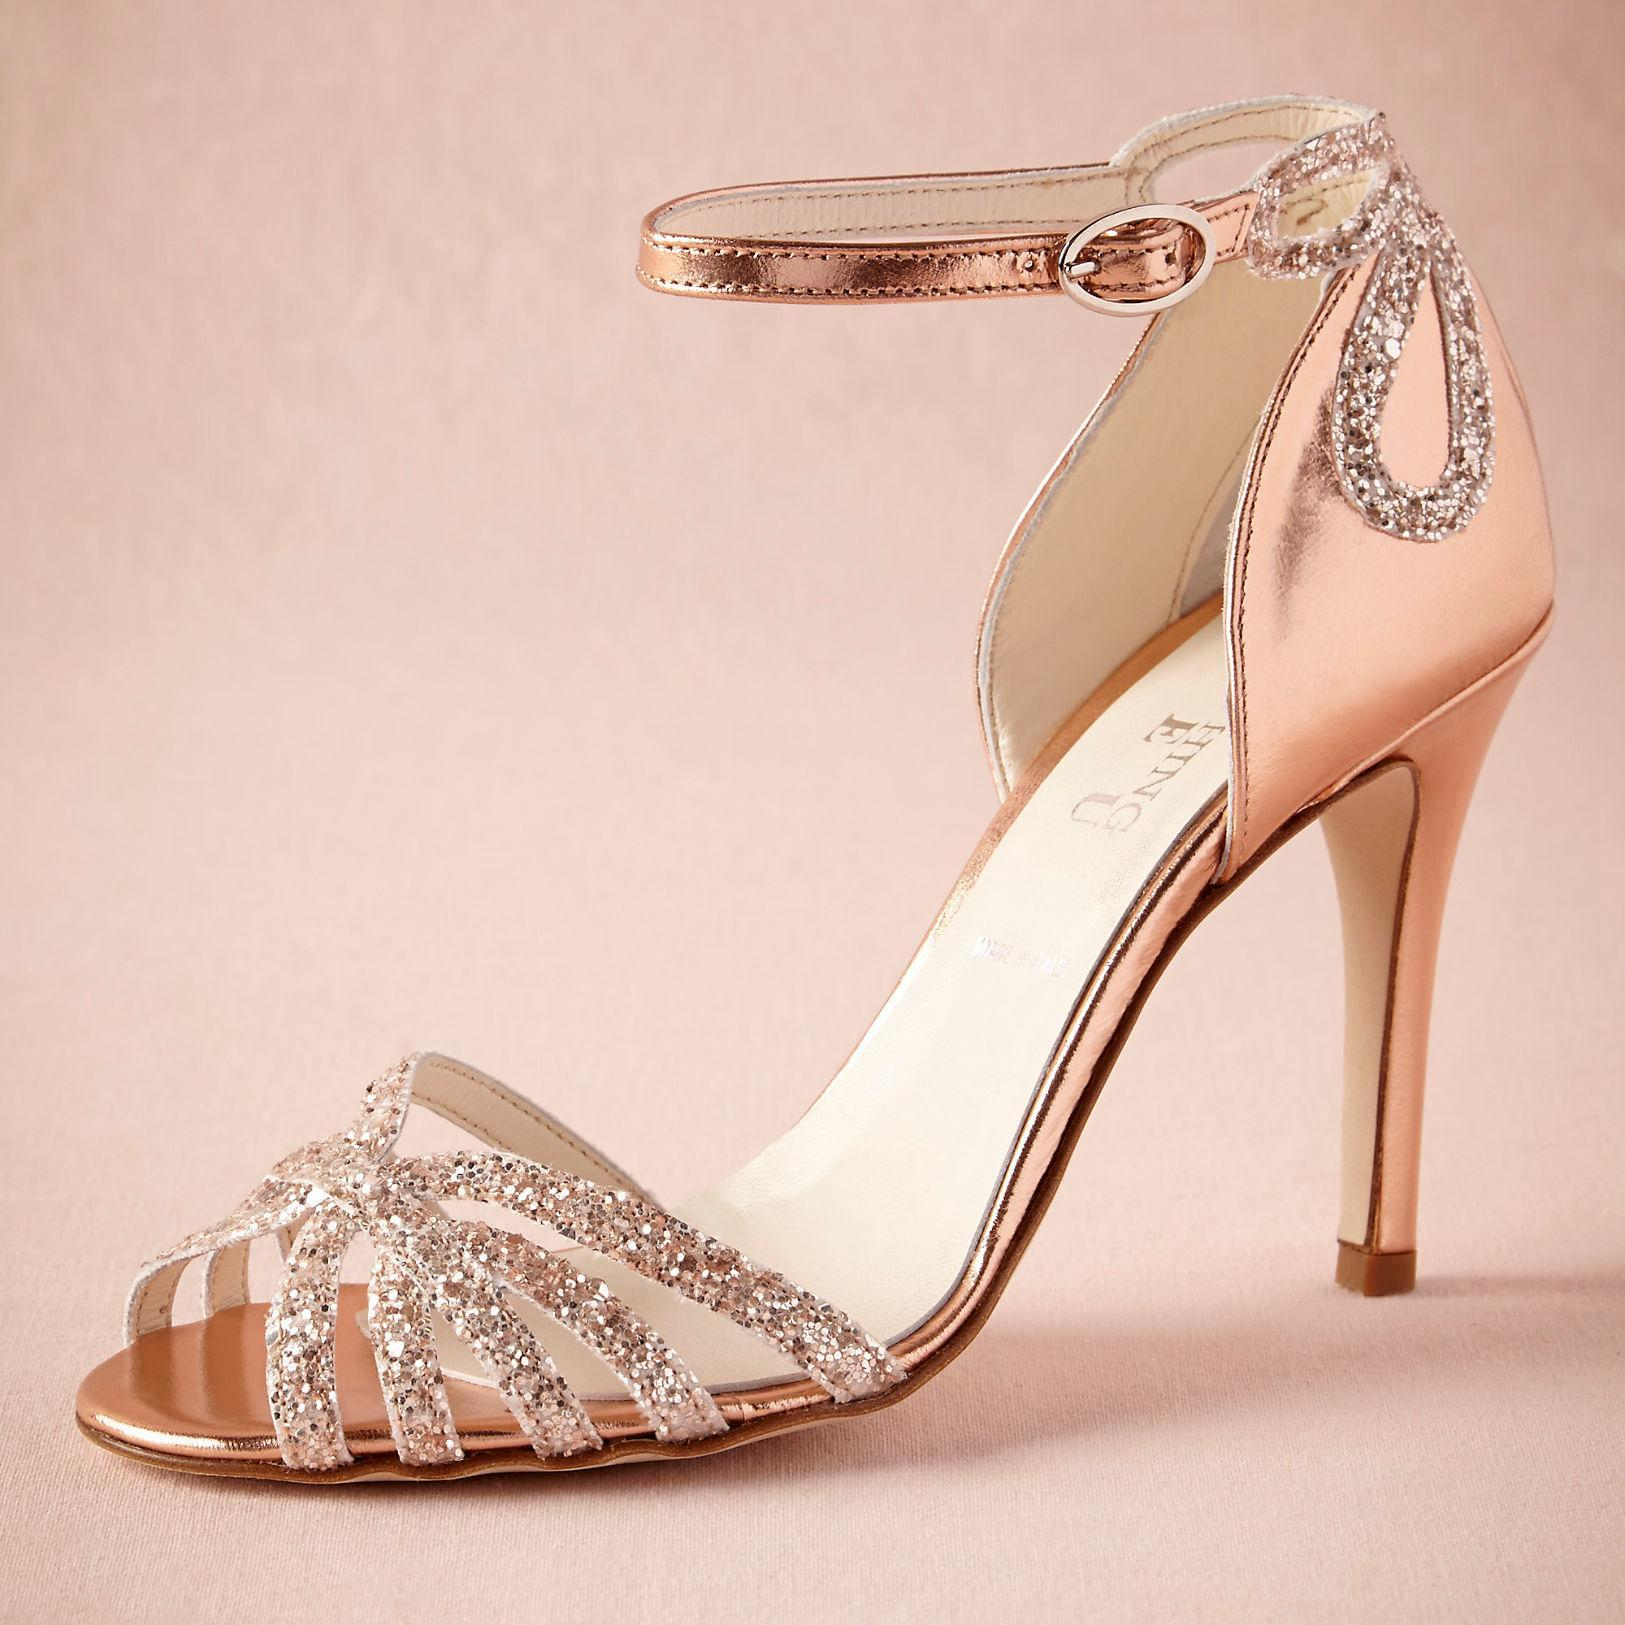 Rose Gold Glittered Heel Real Wedding Shoes Pumps Sandals Gold Leather  Buckle Closure Glitter Party Dance High Wrapped Heels Women Sandals Shoes  For Womens ... 3d0cc34823